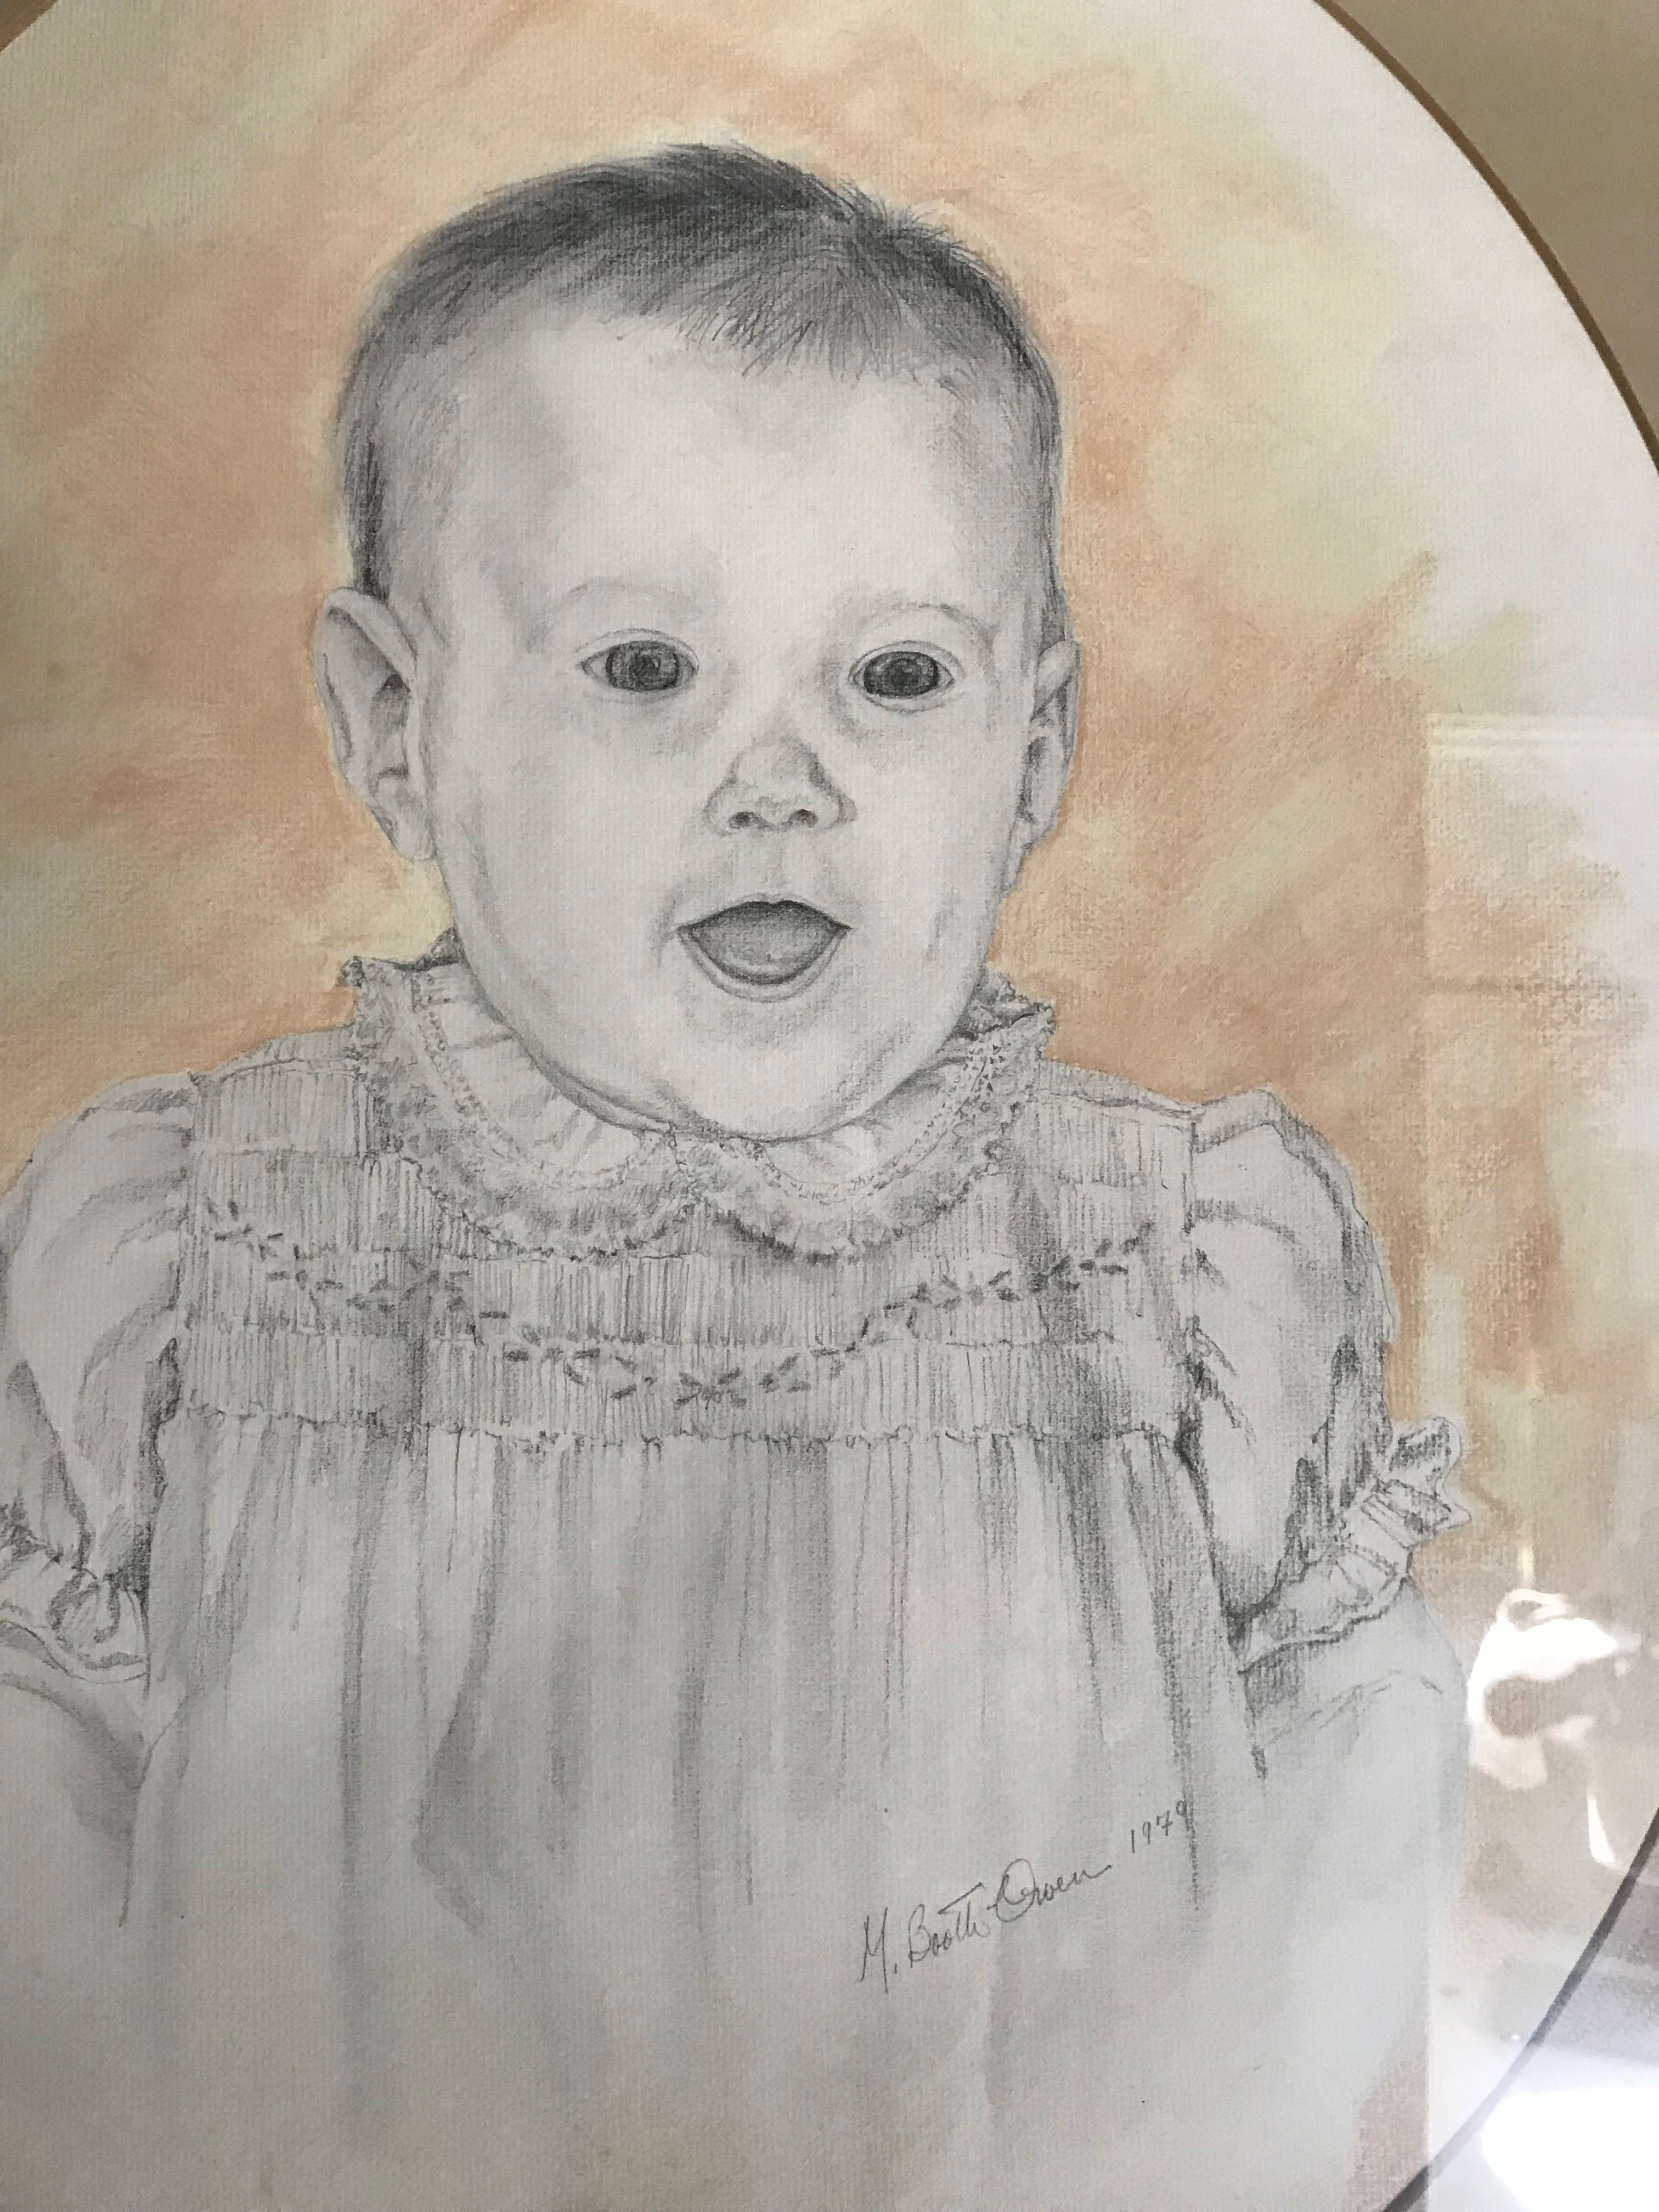 Baby girl portrait carbon pencil drawing with pastel background